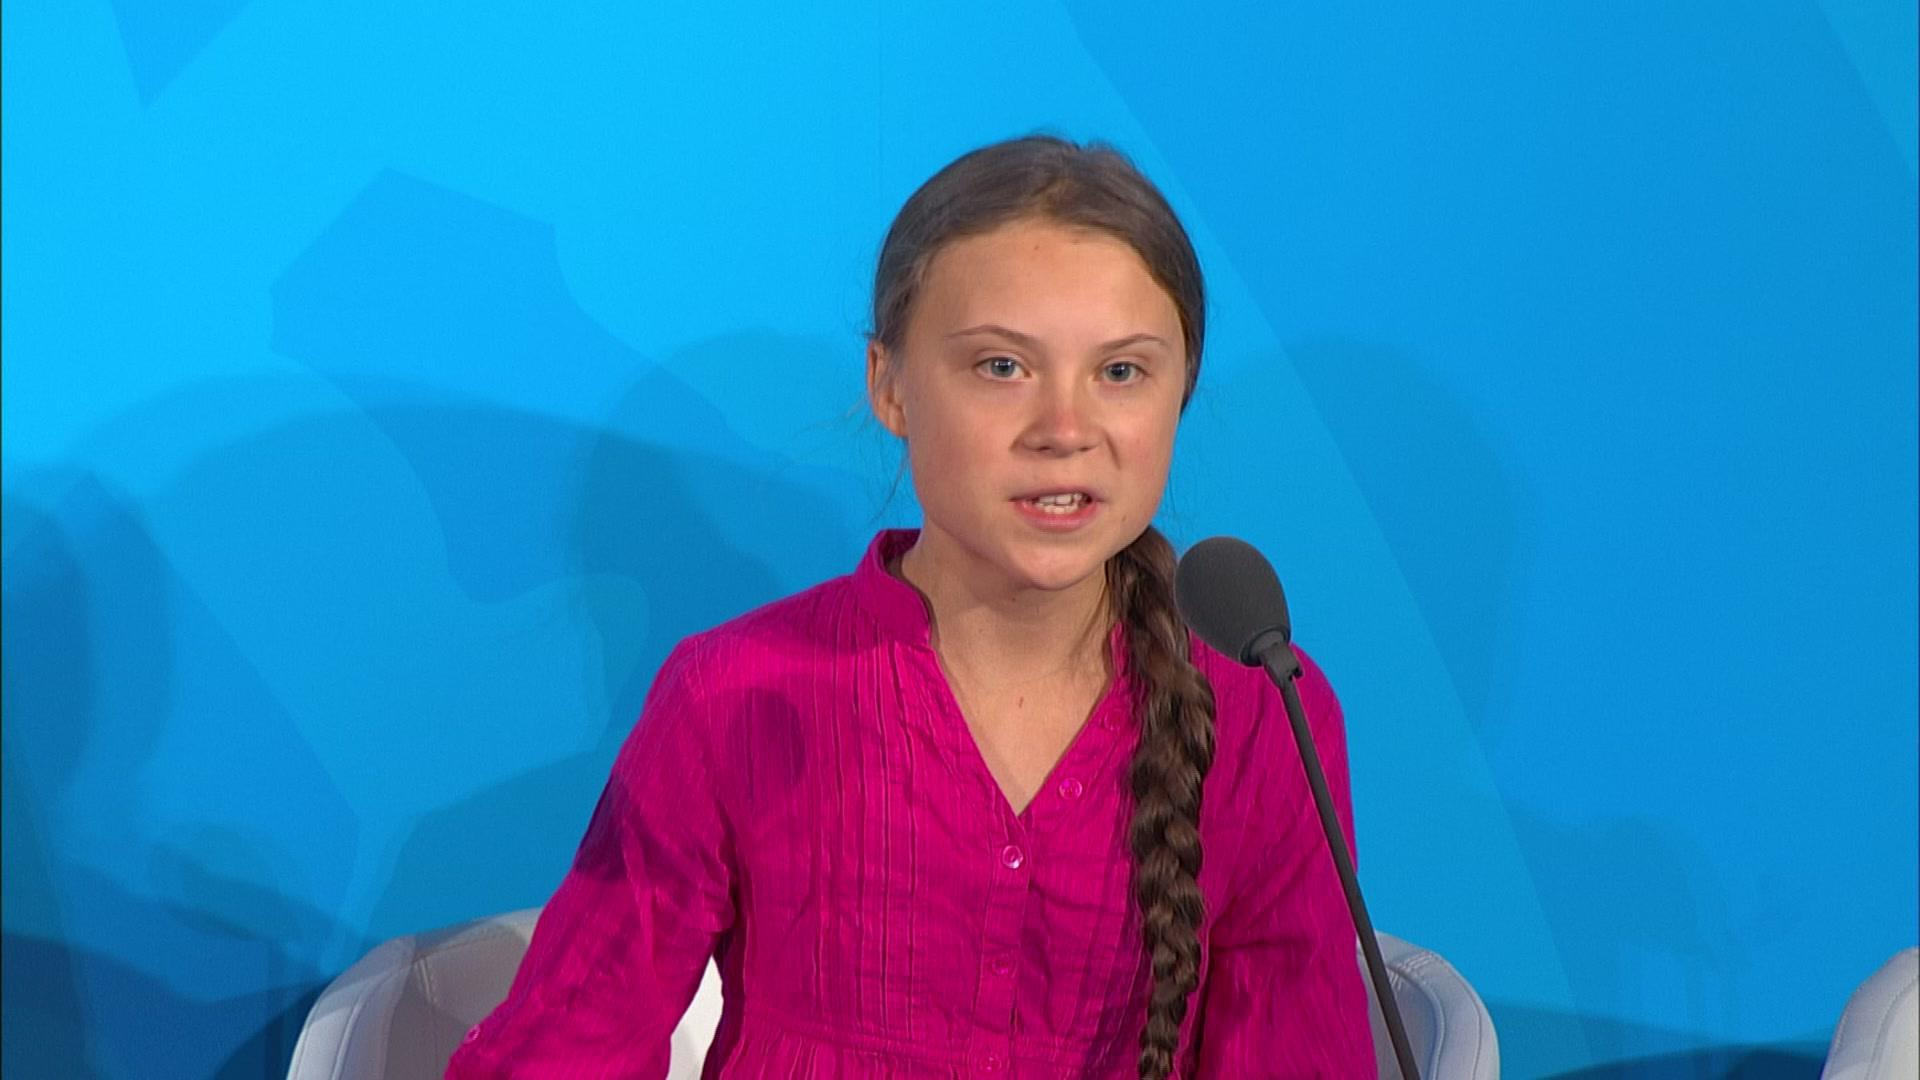 Emotional Greta Thunberg chastises world leaders Video